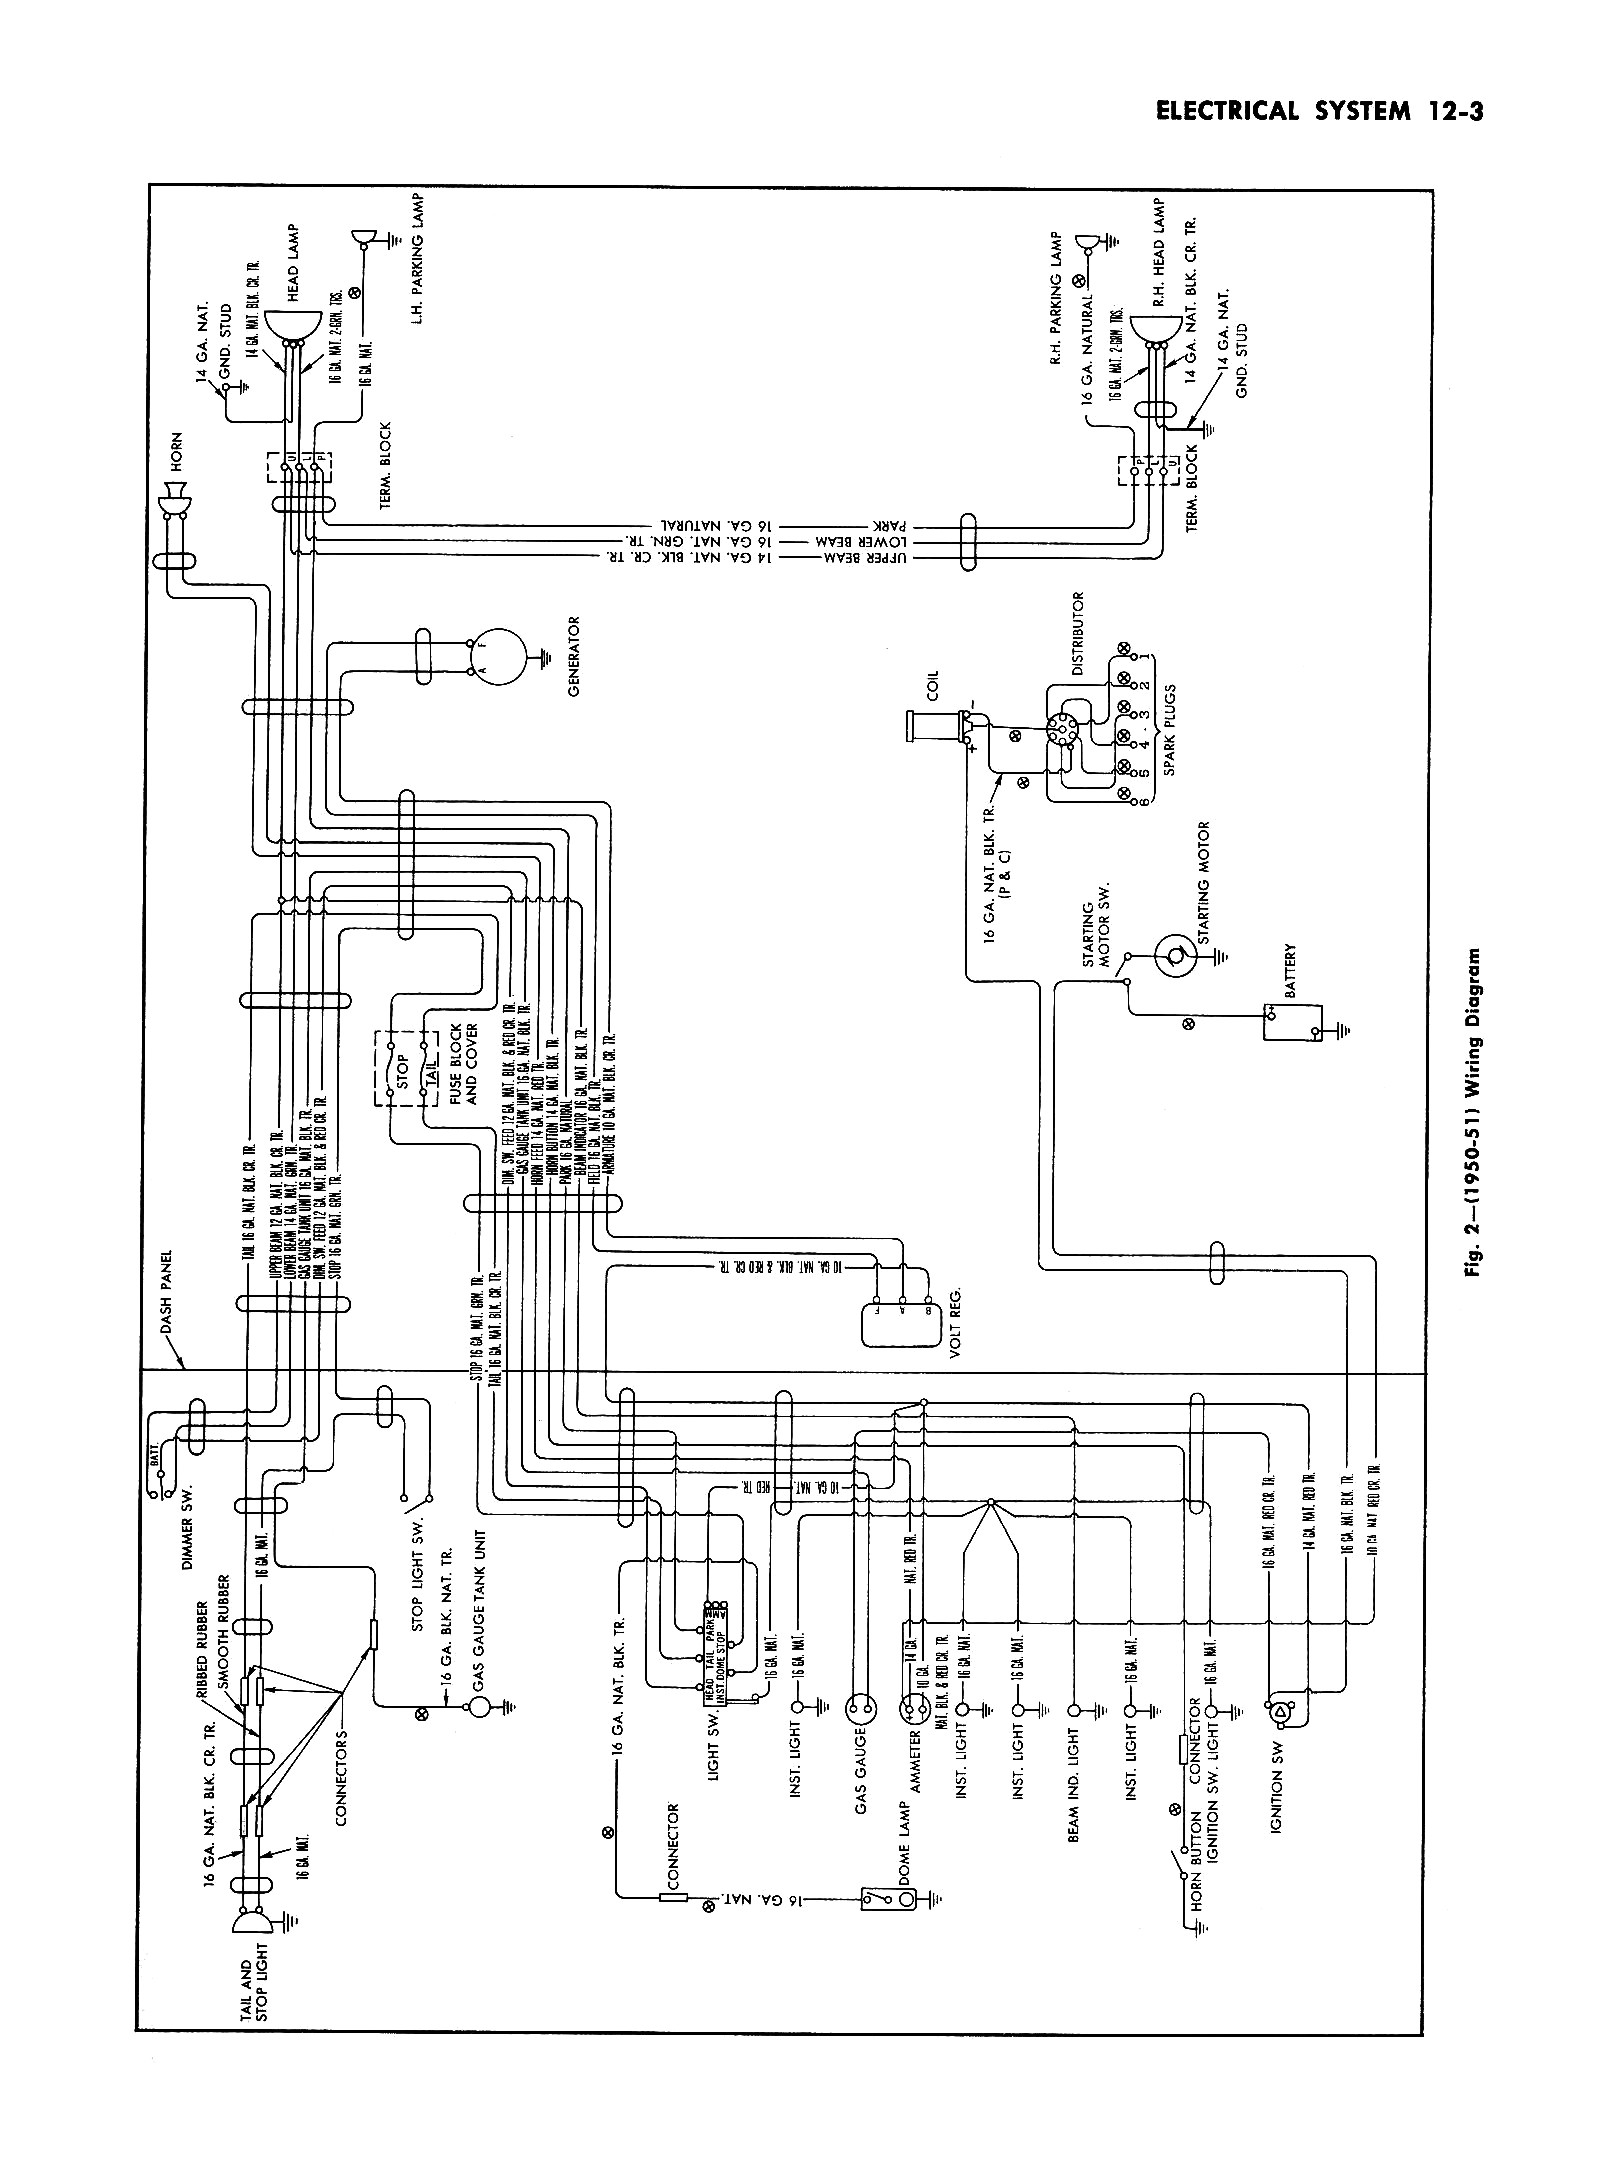 chevy wiring diagrams 1966 Ford Pick Up Wire Diagrams 1956 Ford Fairlane Wiring-Diagram